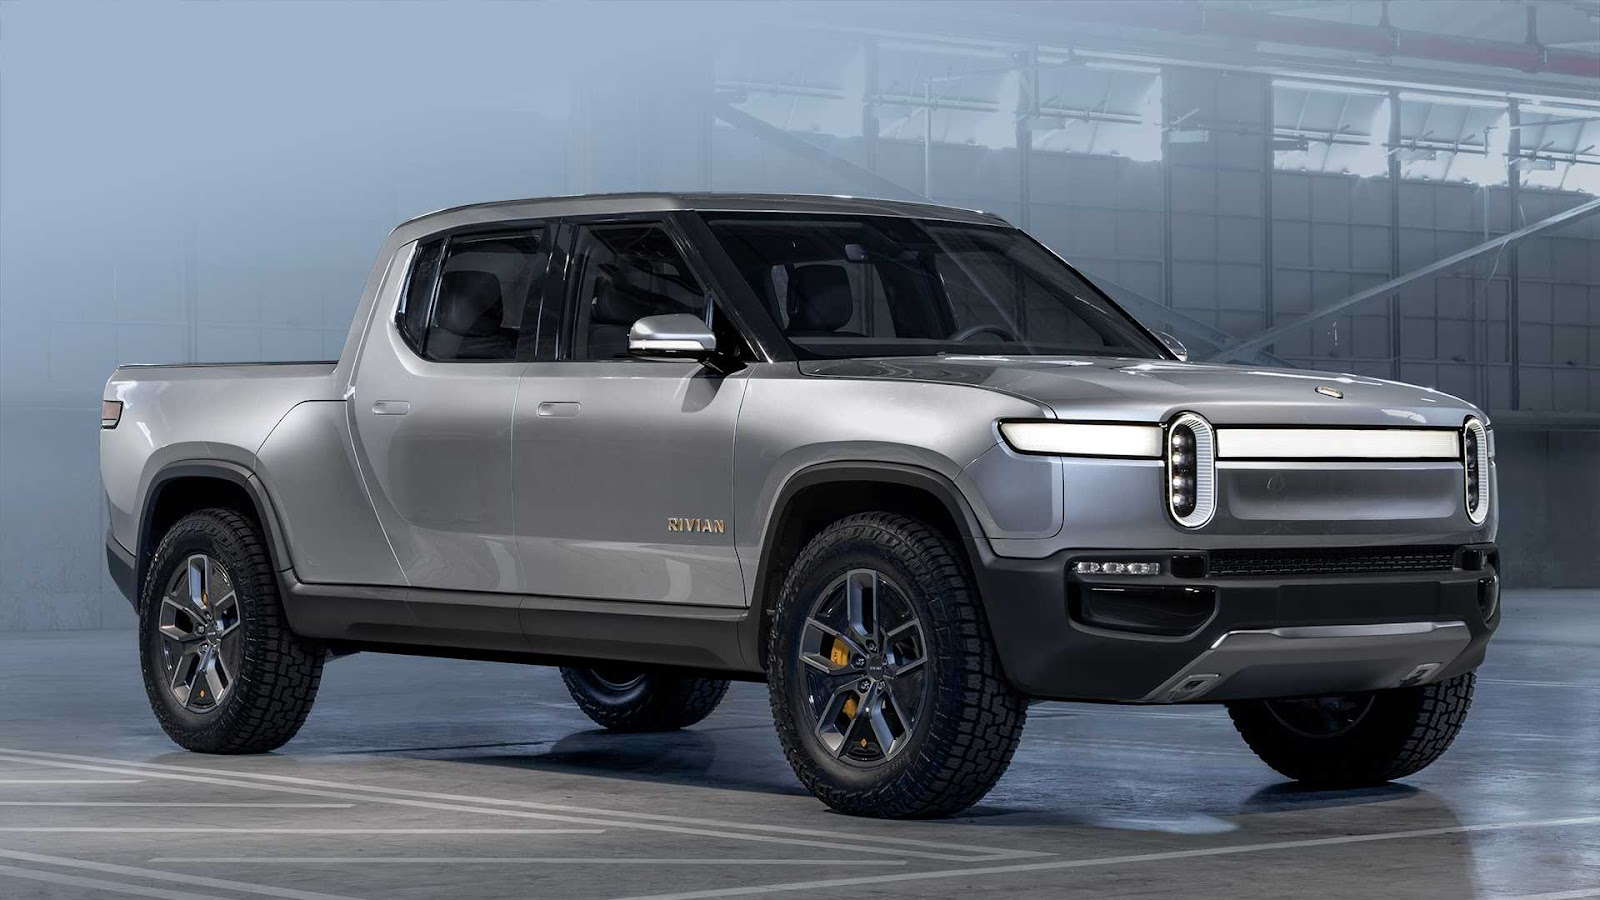 Image result for rivian truck